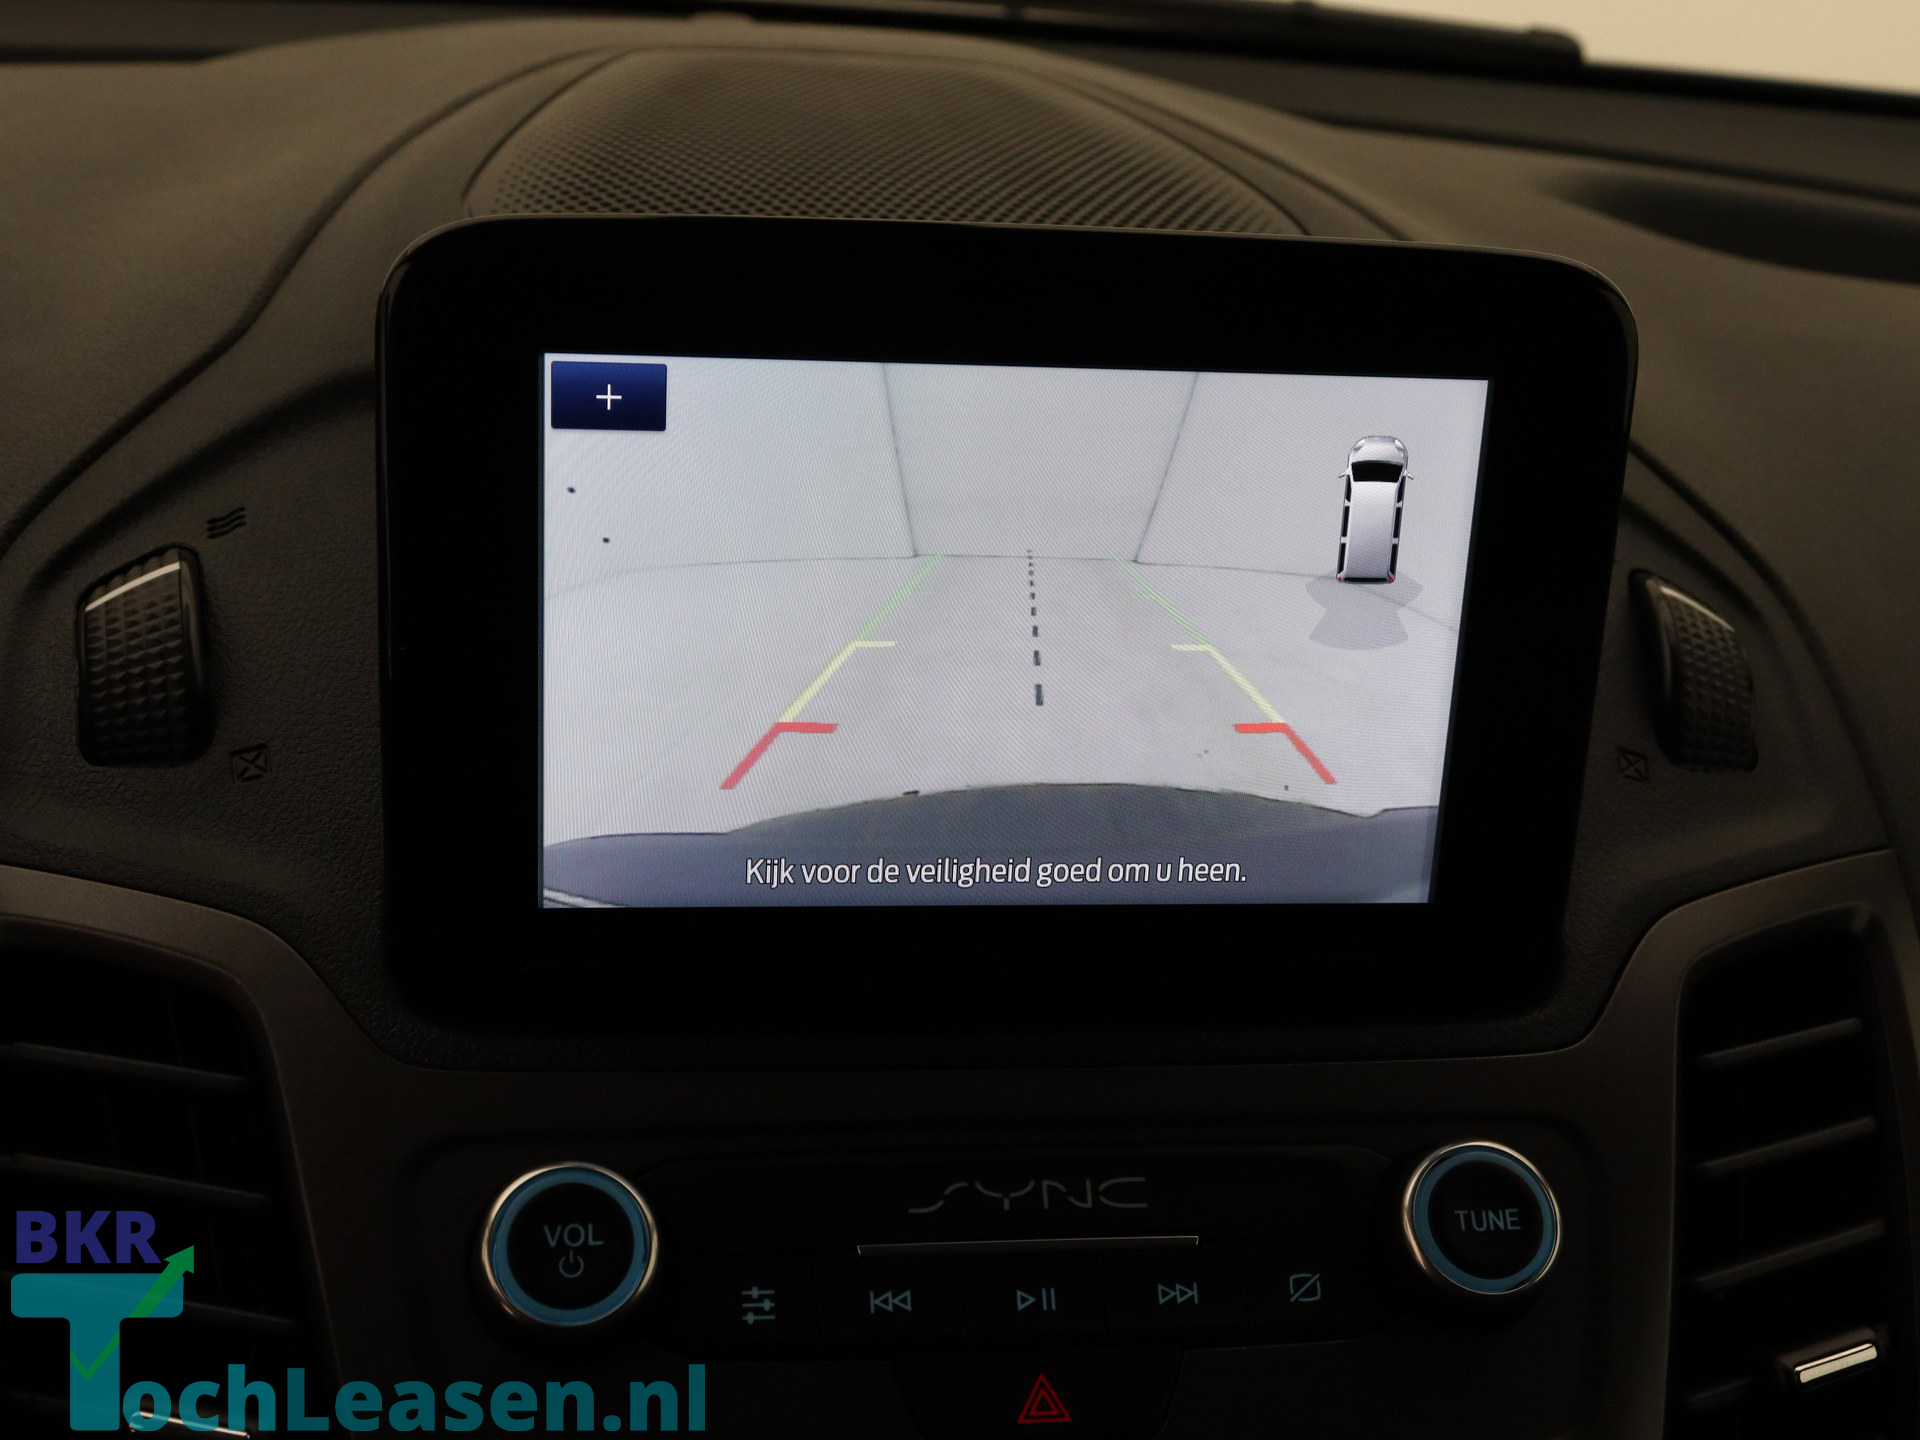 BKRTochleasen - Ford Transit Connect - Zilver 11